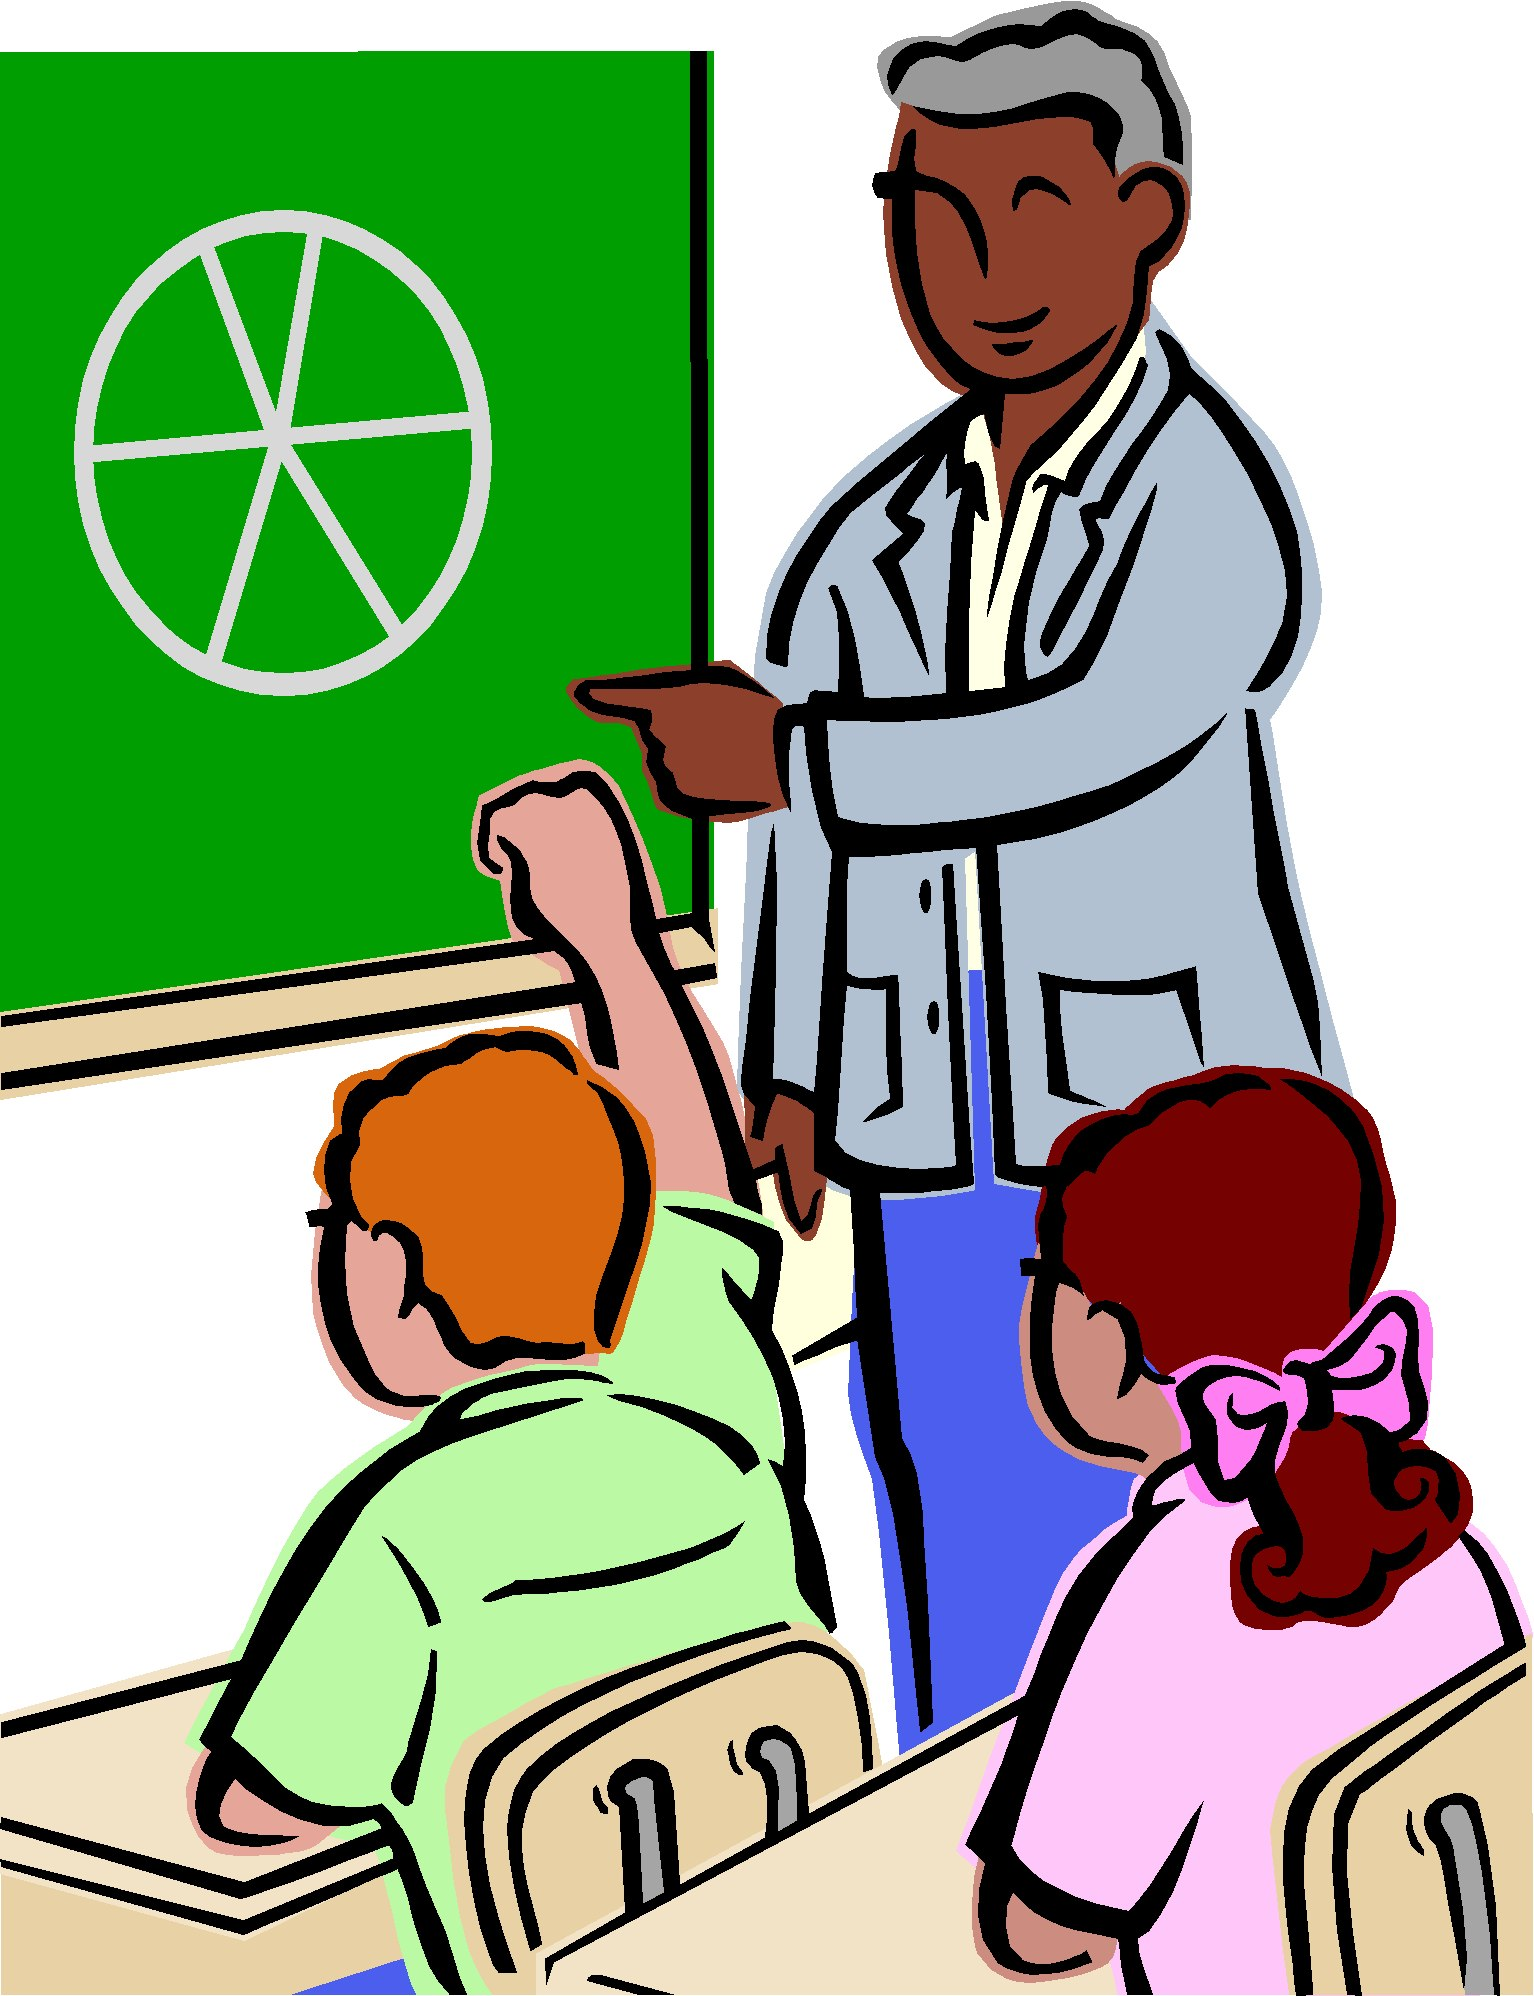 Free Downloadable Clip Art Images For Teachers.